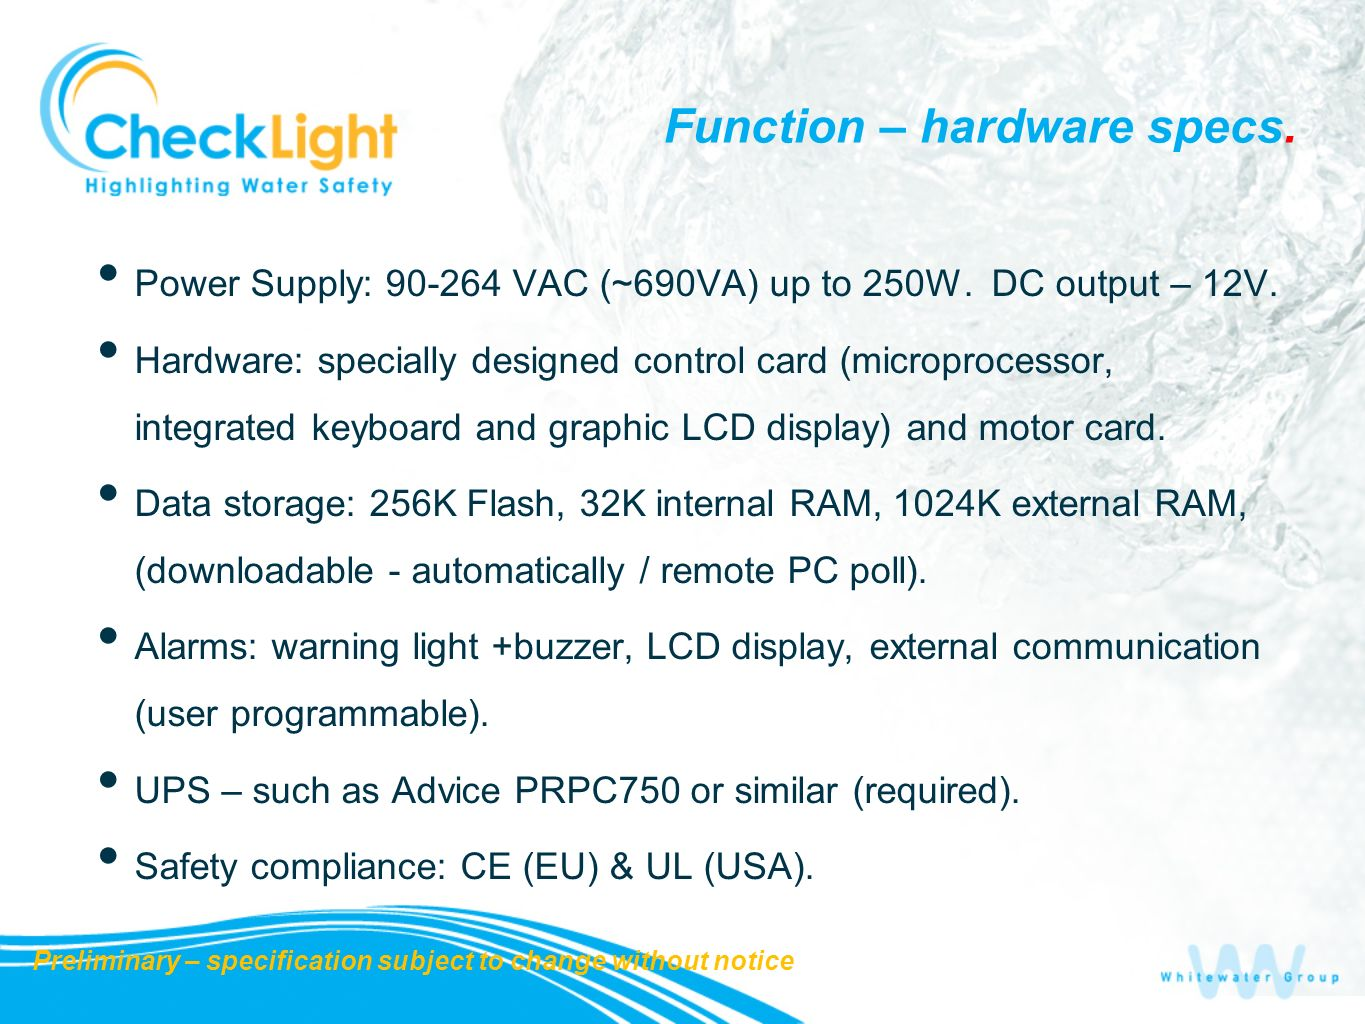 Function – hardware specs. Power Supply: 90-264 VAC (~690VA) up to 250W. DC output – 12V. Hardware: specially designed control card (microprocessor, i